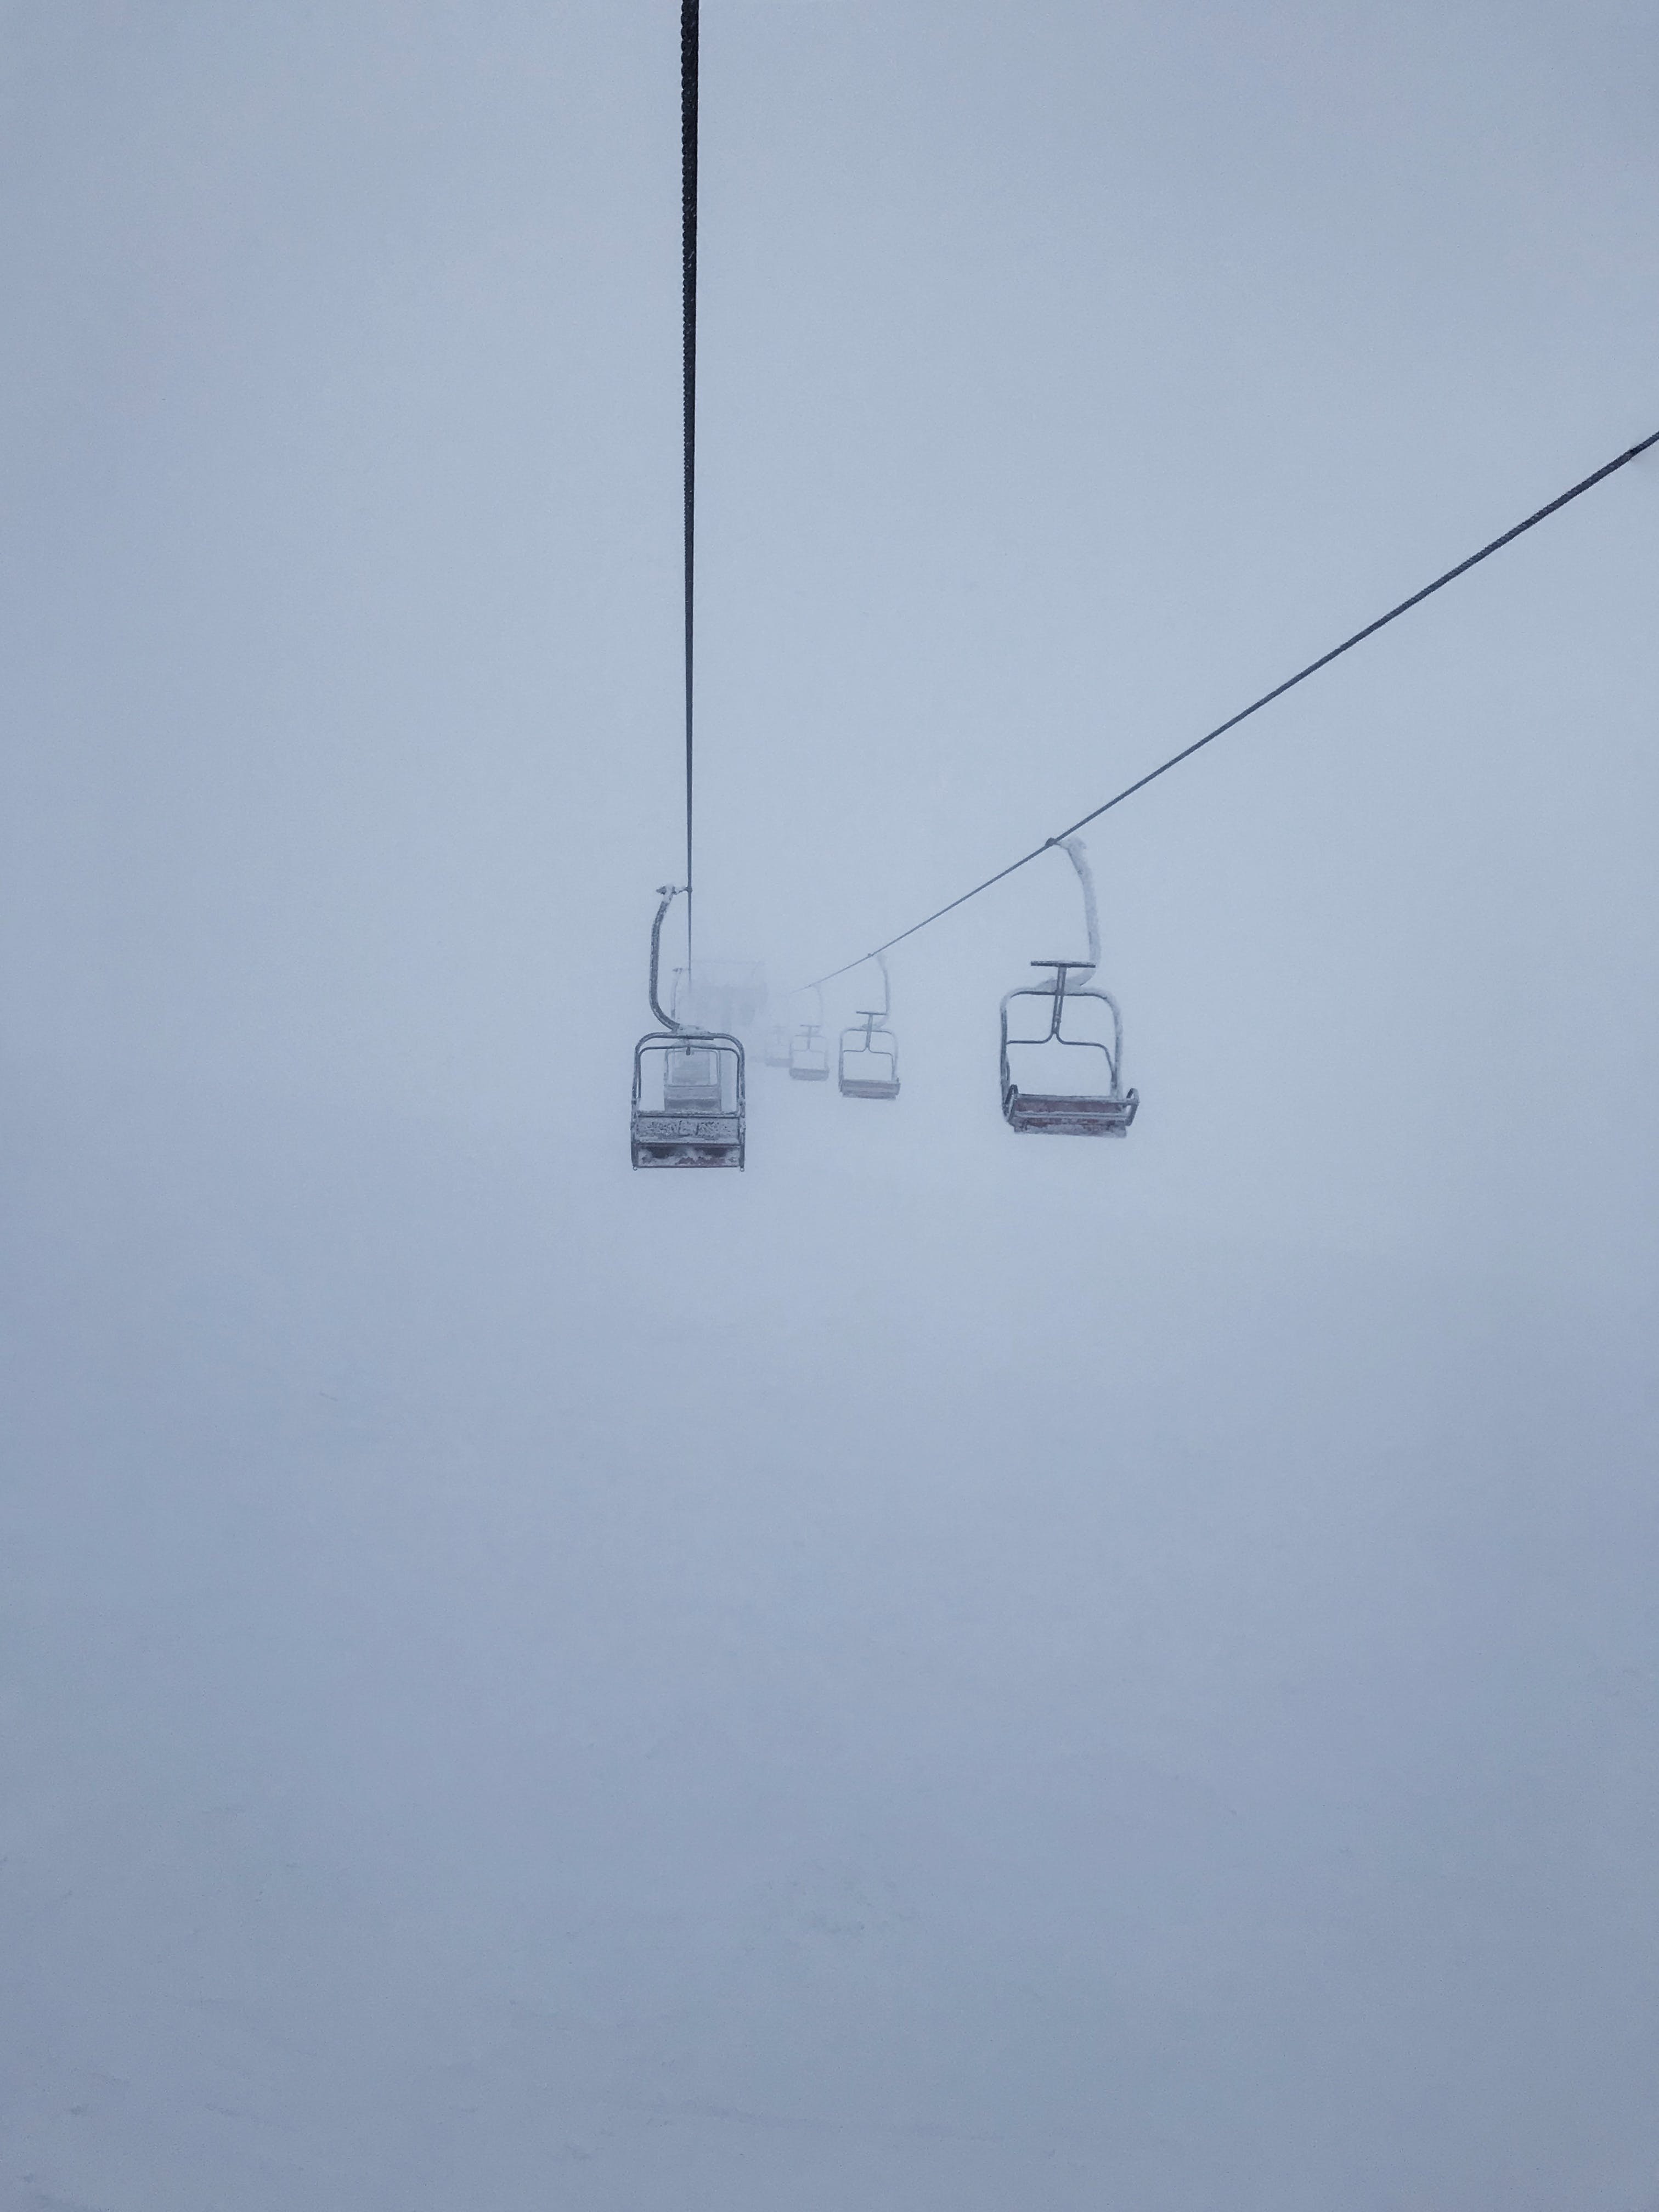 Free stock photo of cable car, cable cars, fog, foggy